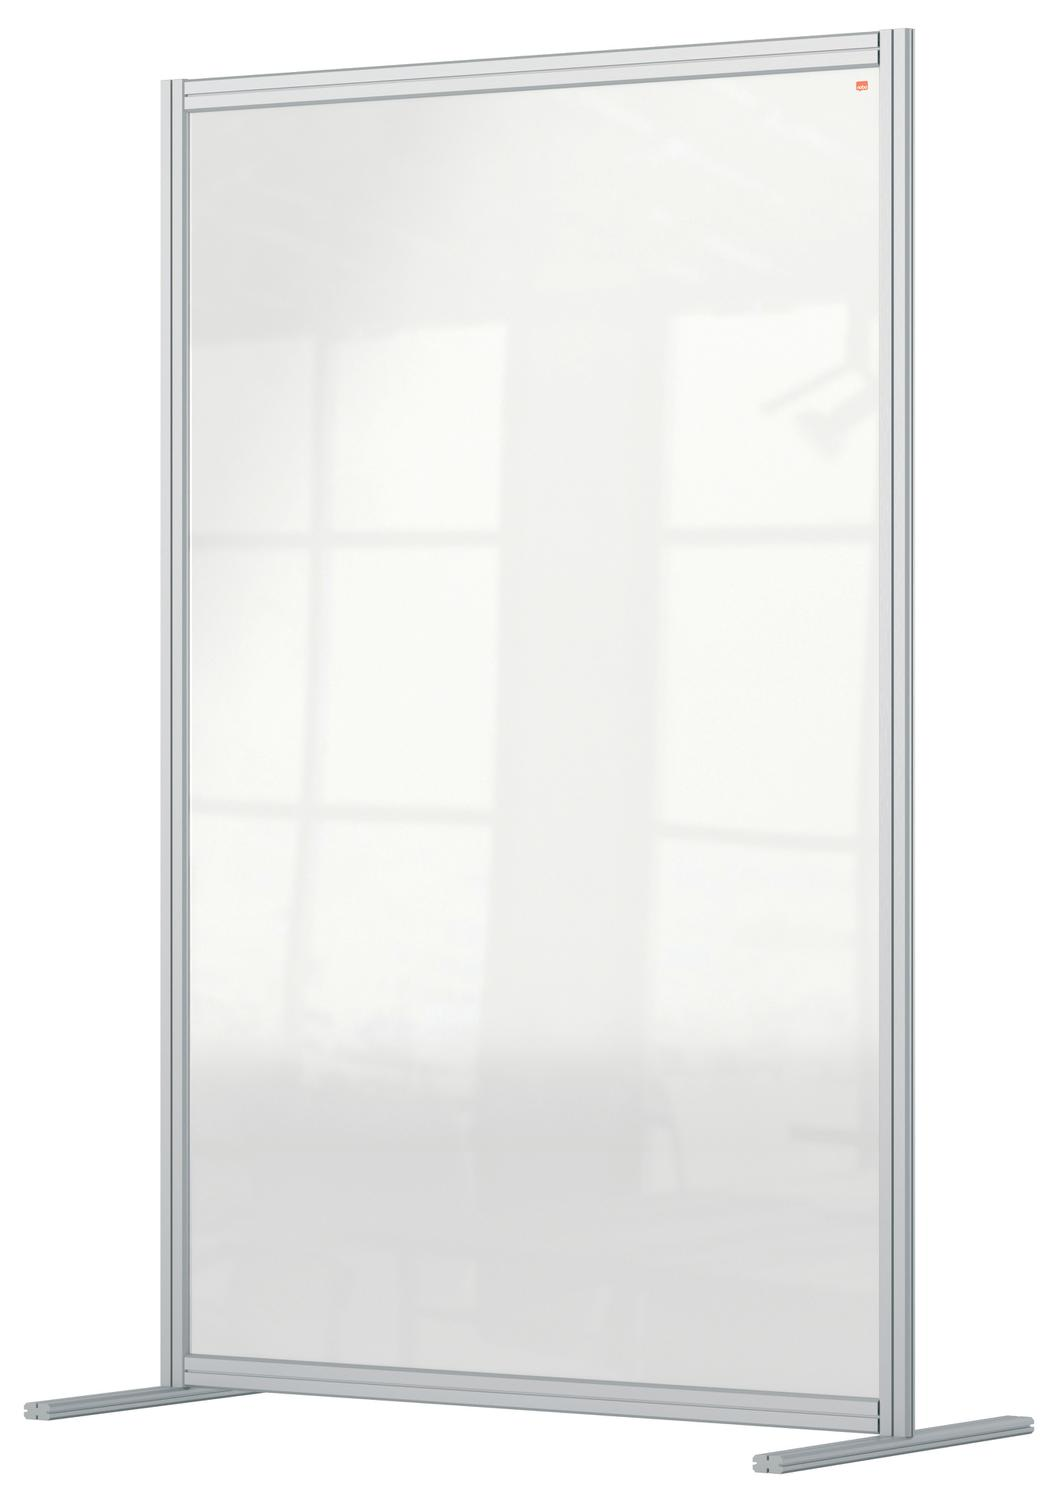 Nobo Premium Plus Acrylic Free Standing Protective Room Divider Screen Modular System 1200x1800mm Clear